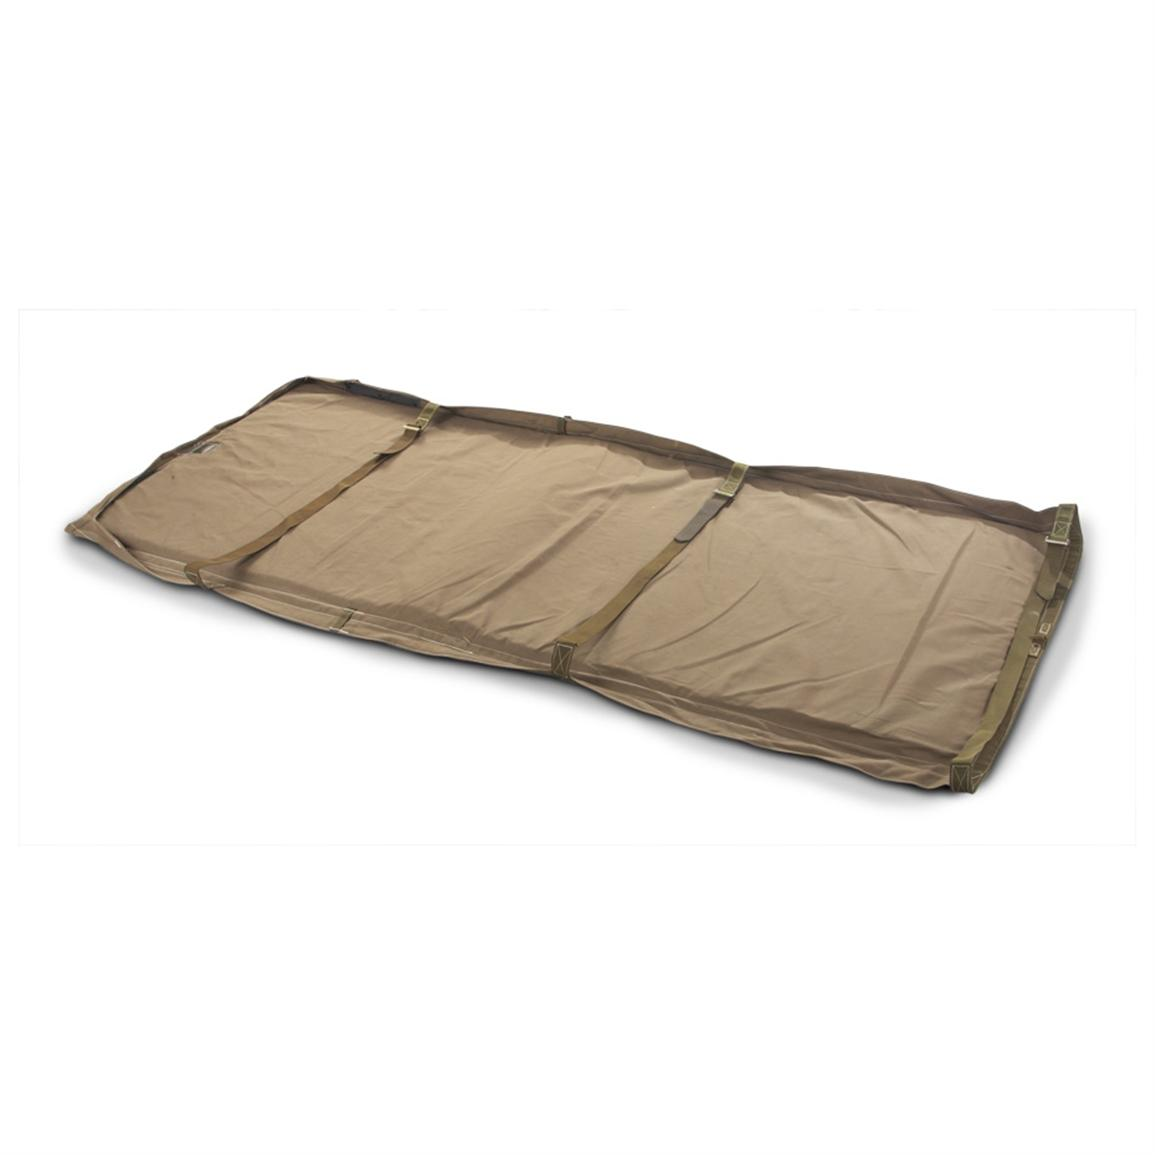 French Military Surplus Air Force Covered Foam Ground Mat, Khaki